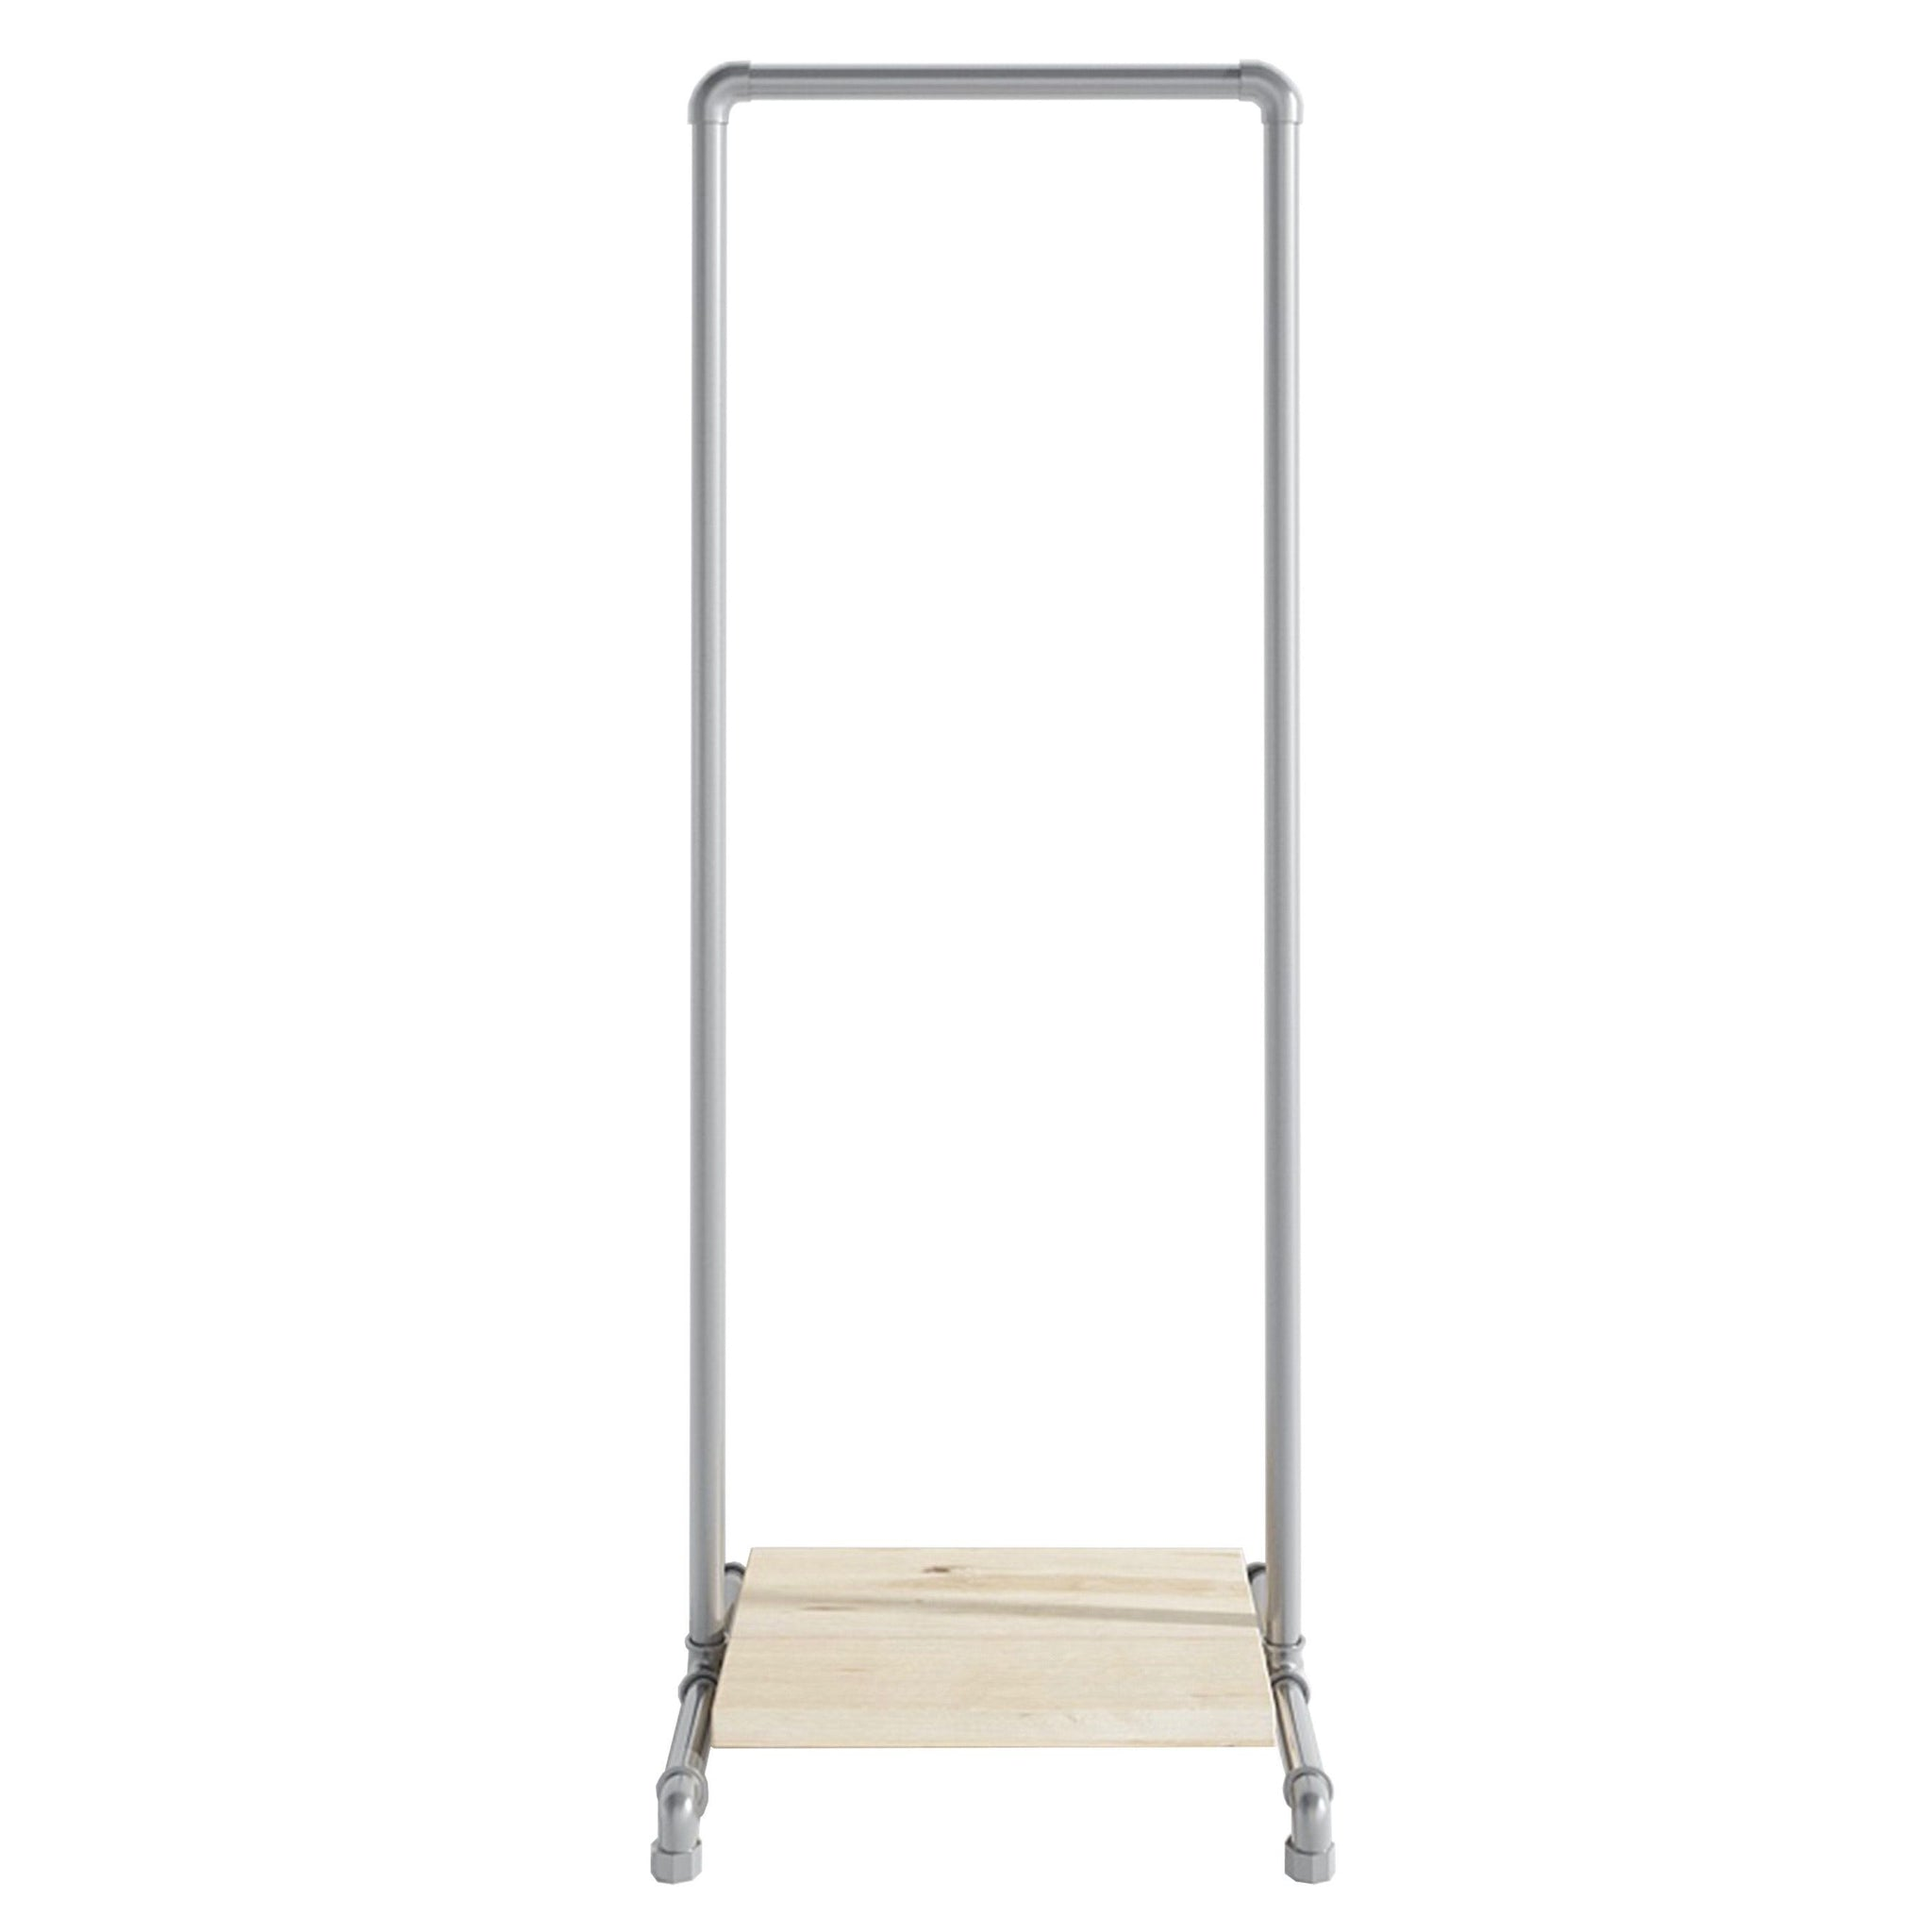 Ziito Clothes Rail C1 / 50 cm / Uden hjul Wood Low Shelf Tøjstativ